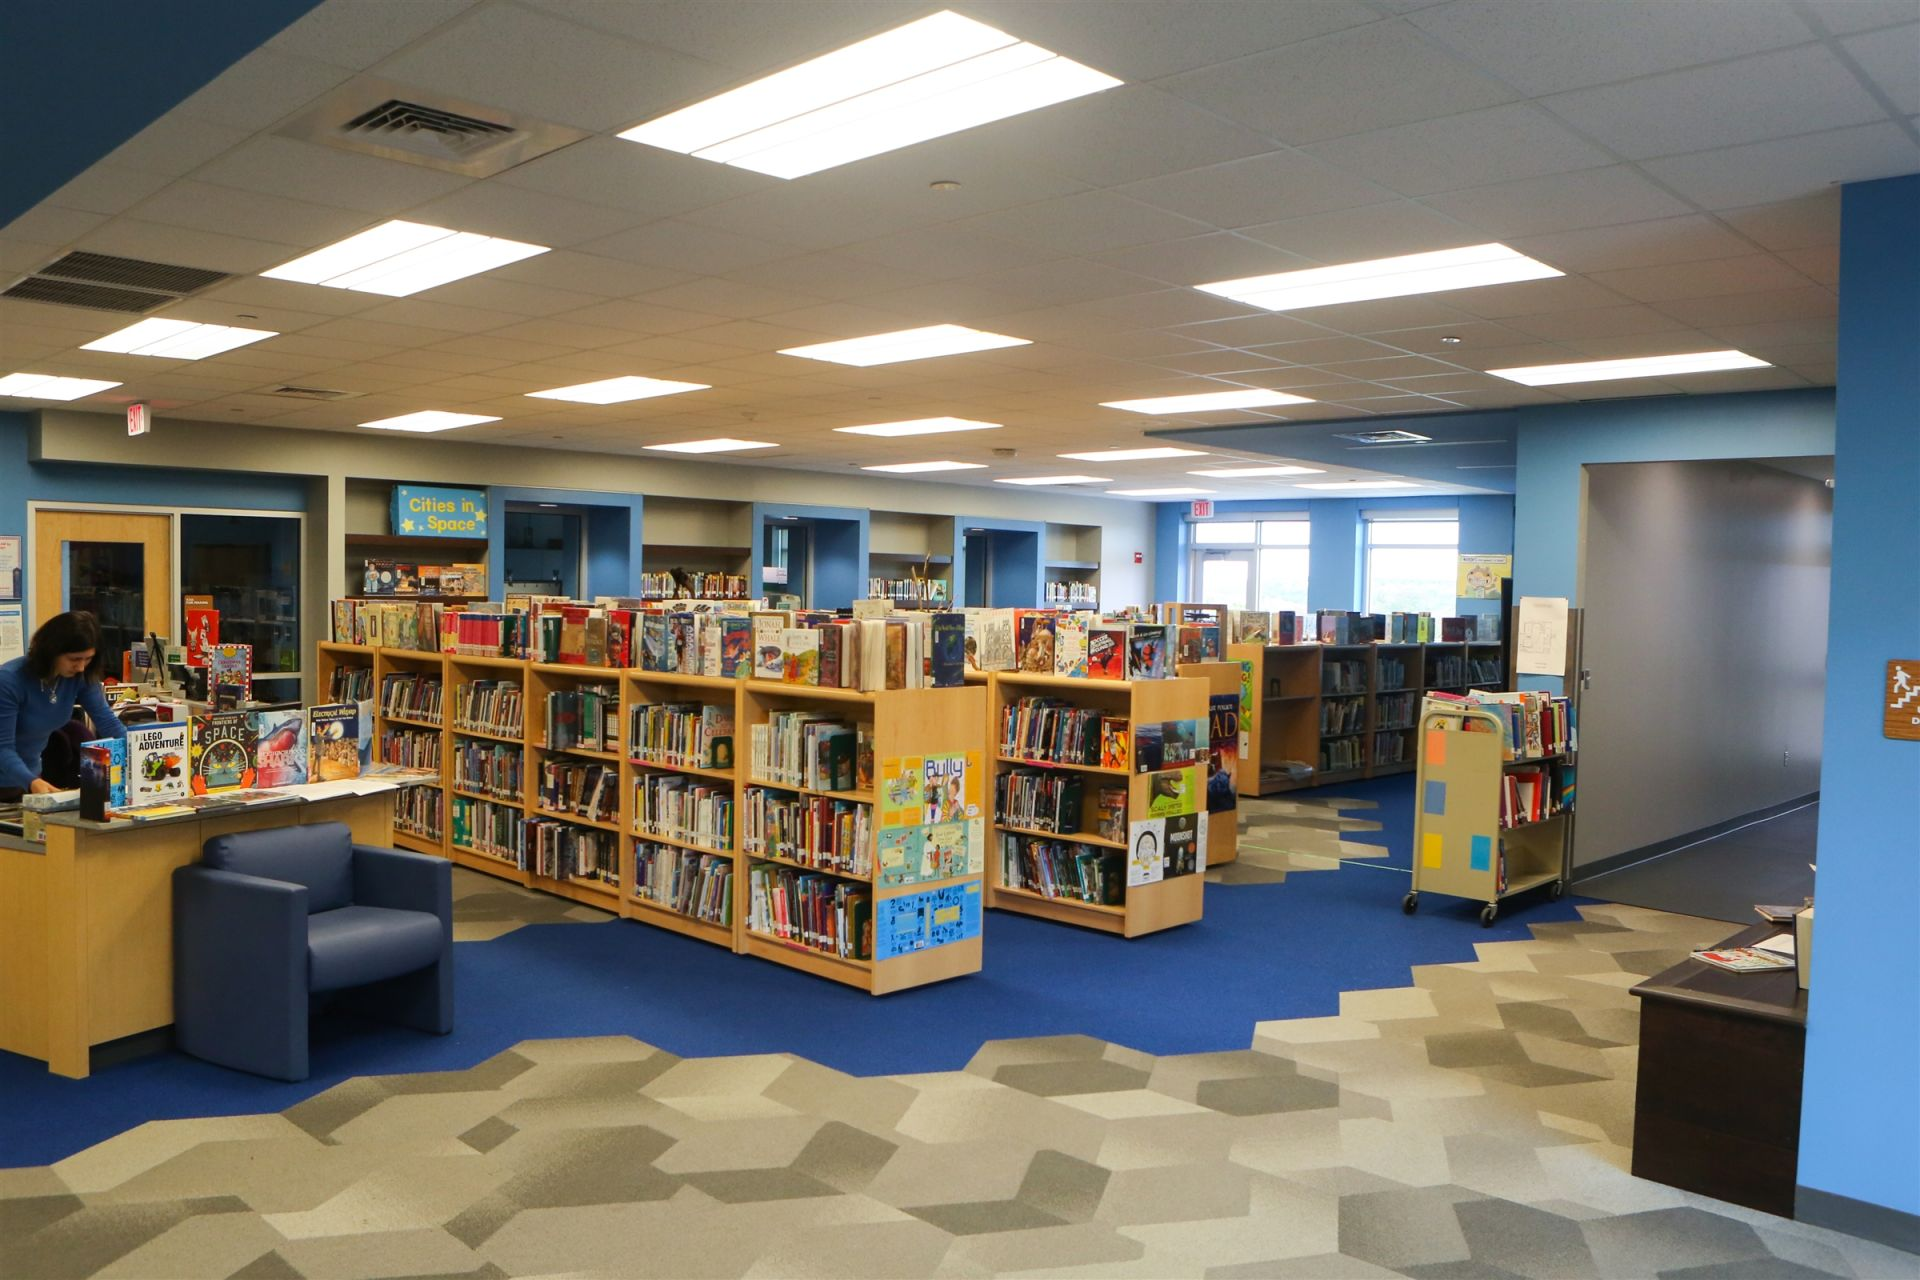 The Library at St. Gabriel's Catholic School is designed to encourage students to become self-directed lifelong learners and active, independent, effective users of information and literature. The Library showcases a diverse collection of both print and non-print materials that are maintained to support the curriculum, interests, and needs of the St. Gabriel's community. Additionally, the Library is designed with reading nooks and a gathering space for students to participate in story time or work on group projects together.